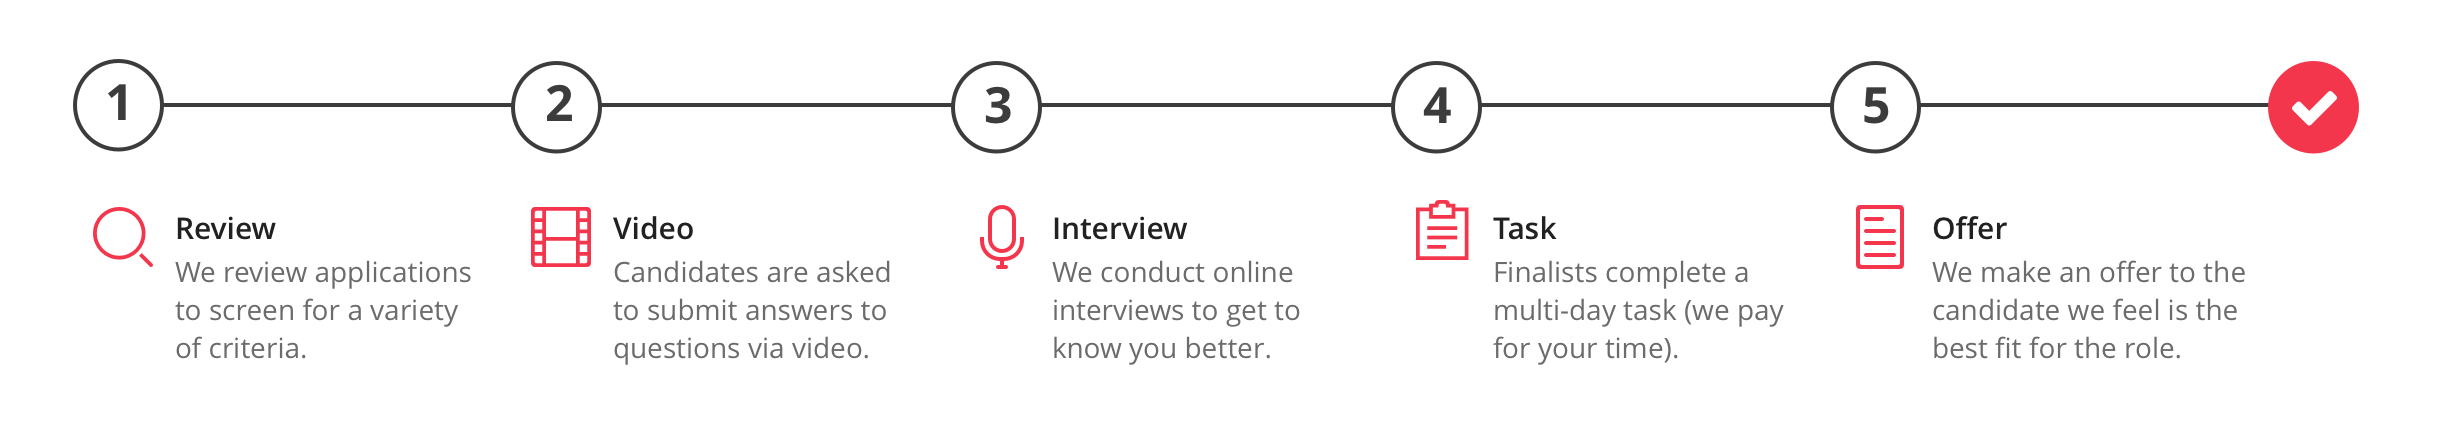 Our five-stage recruitment process